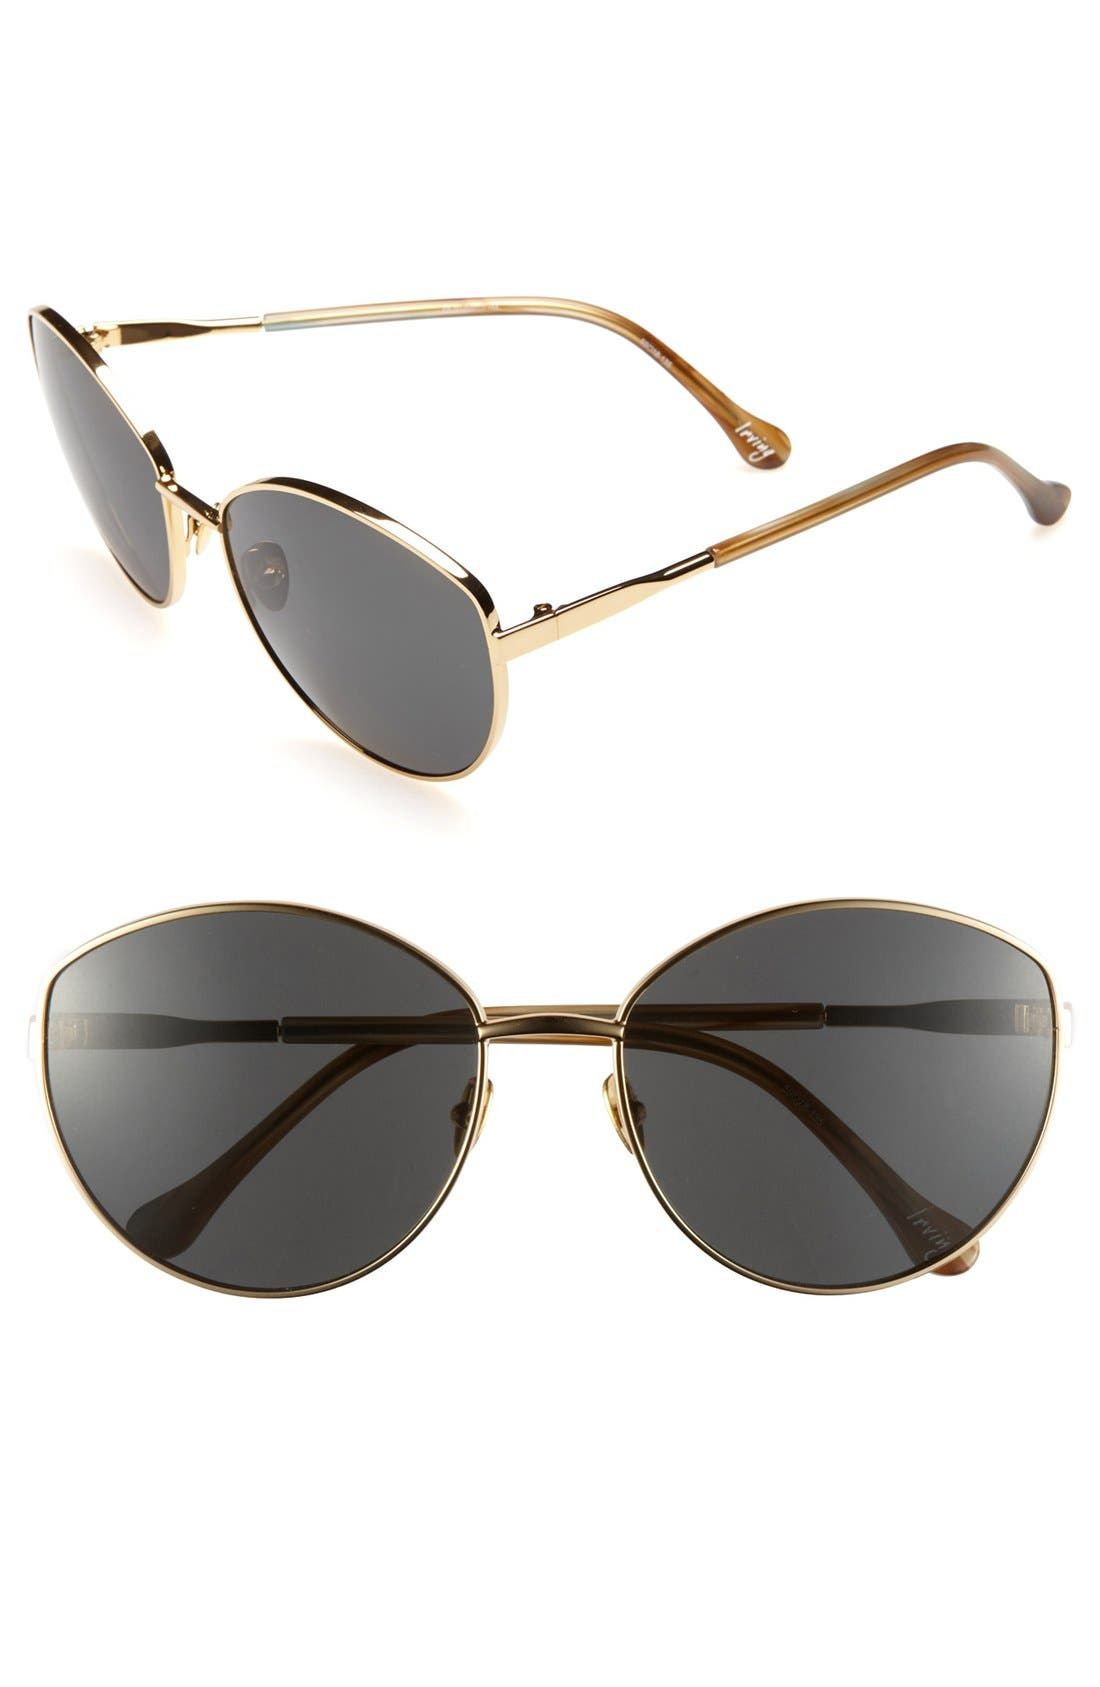 Main Image - Elizabeth and James 'Irving' 59mm Sunglasses